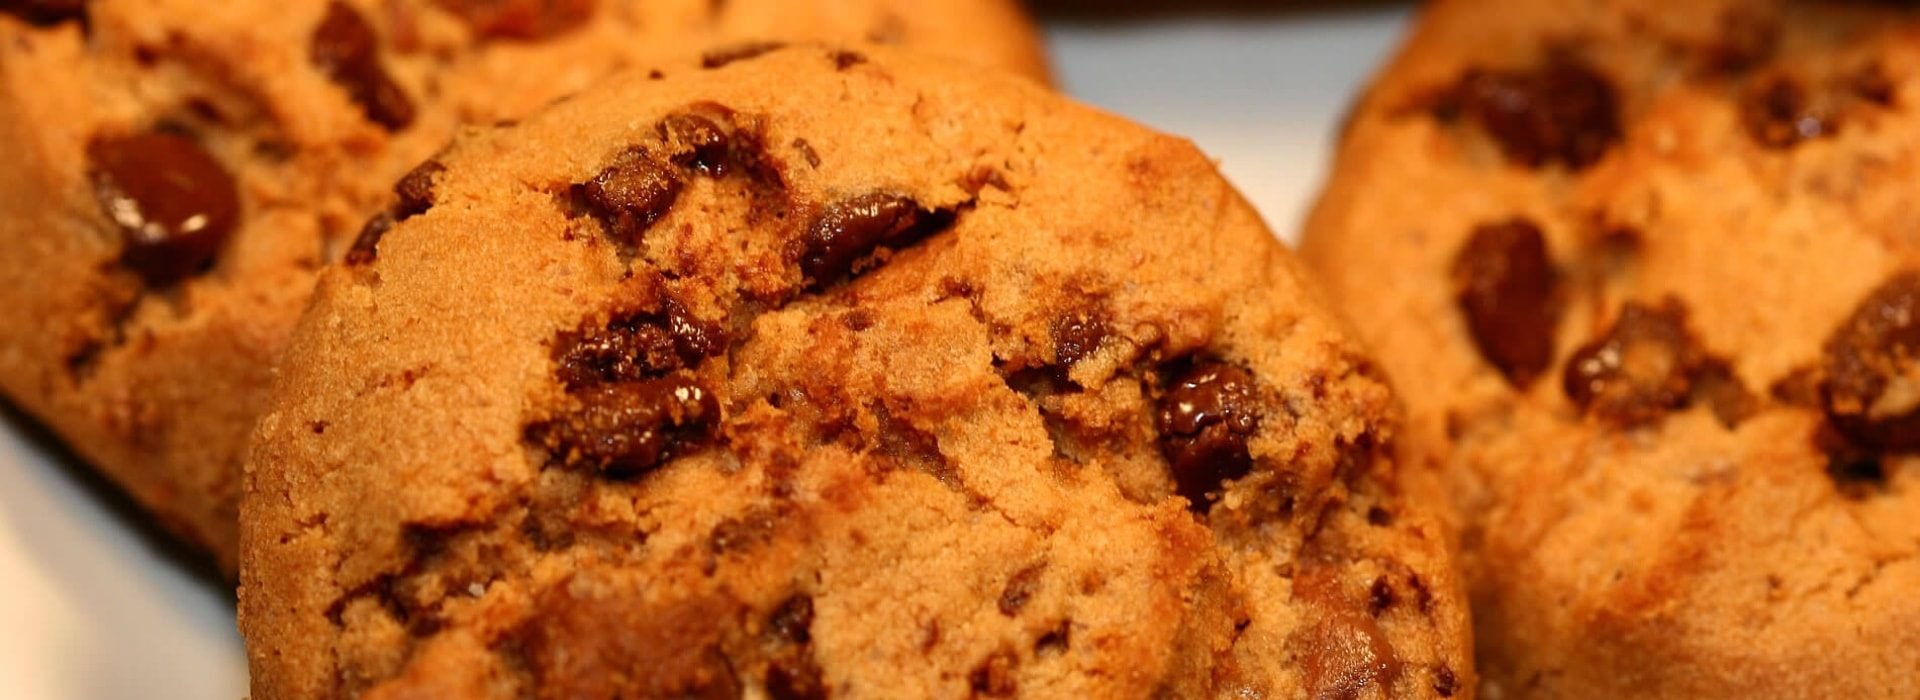 Close up view of chocolate chip cookies